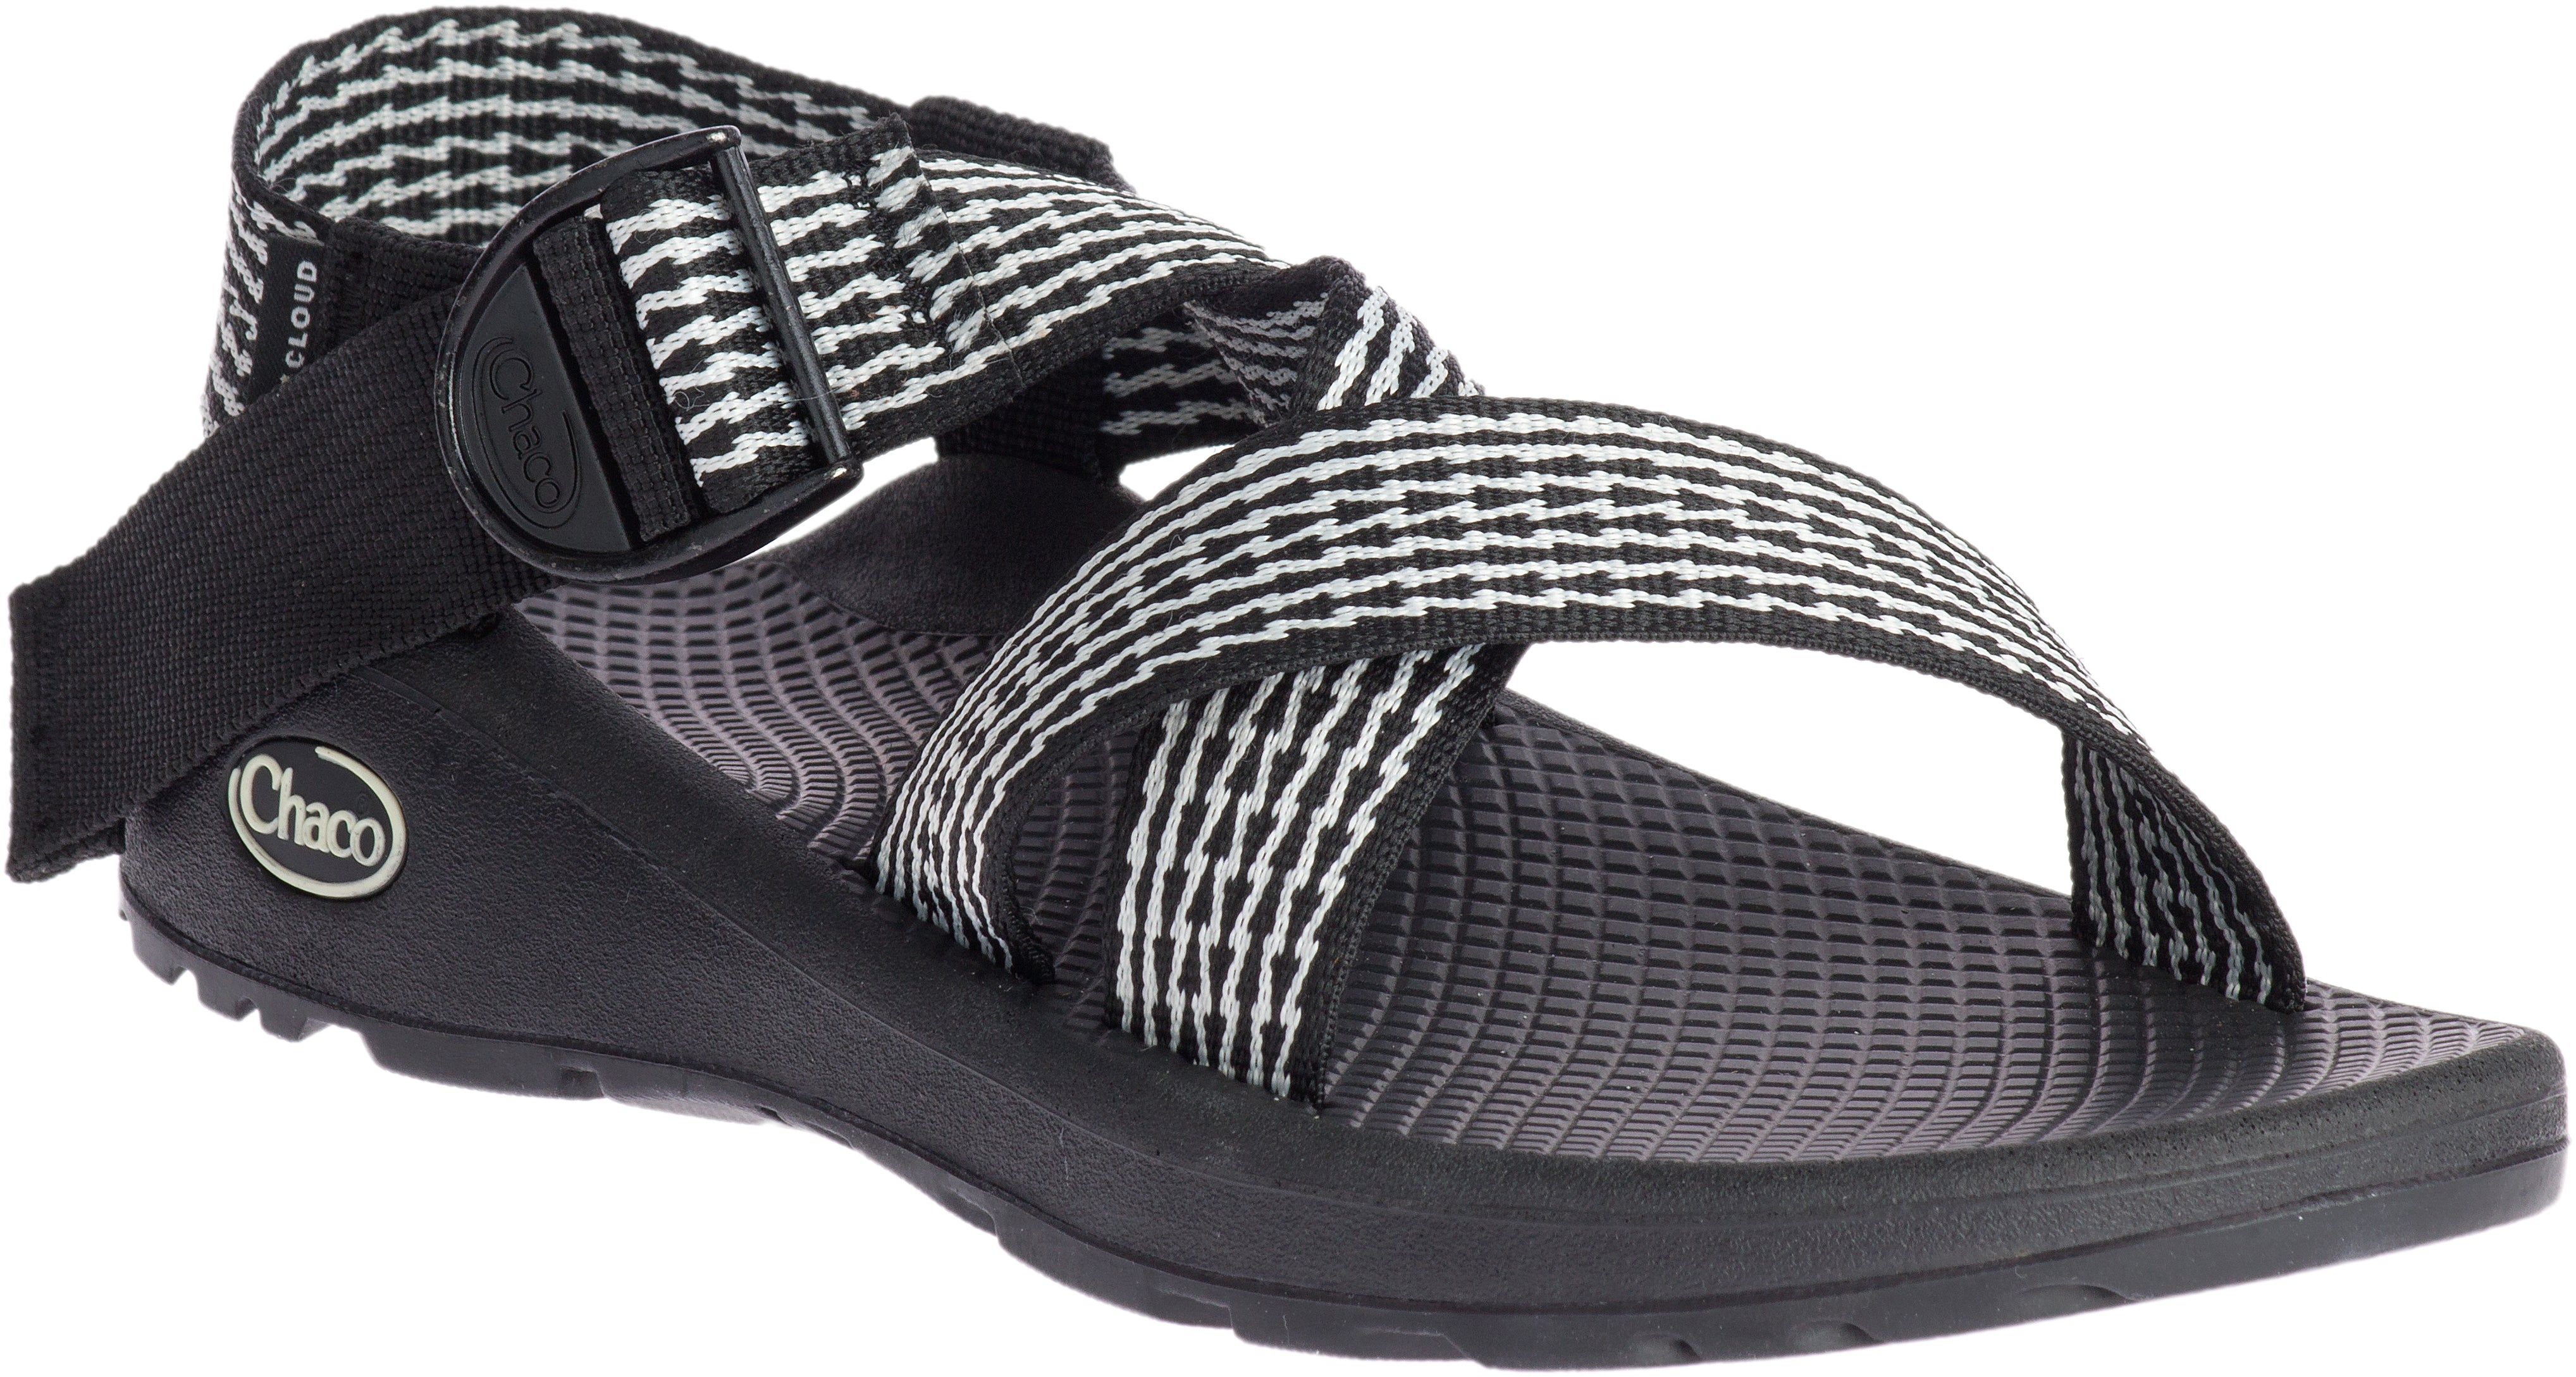 'Chaco' J107076 - Mega ZCloud Sandals - Prong Black